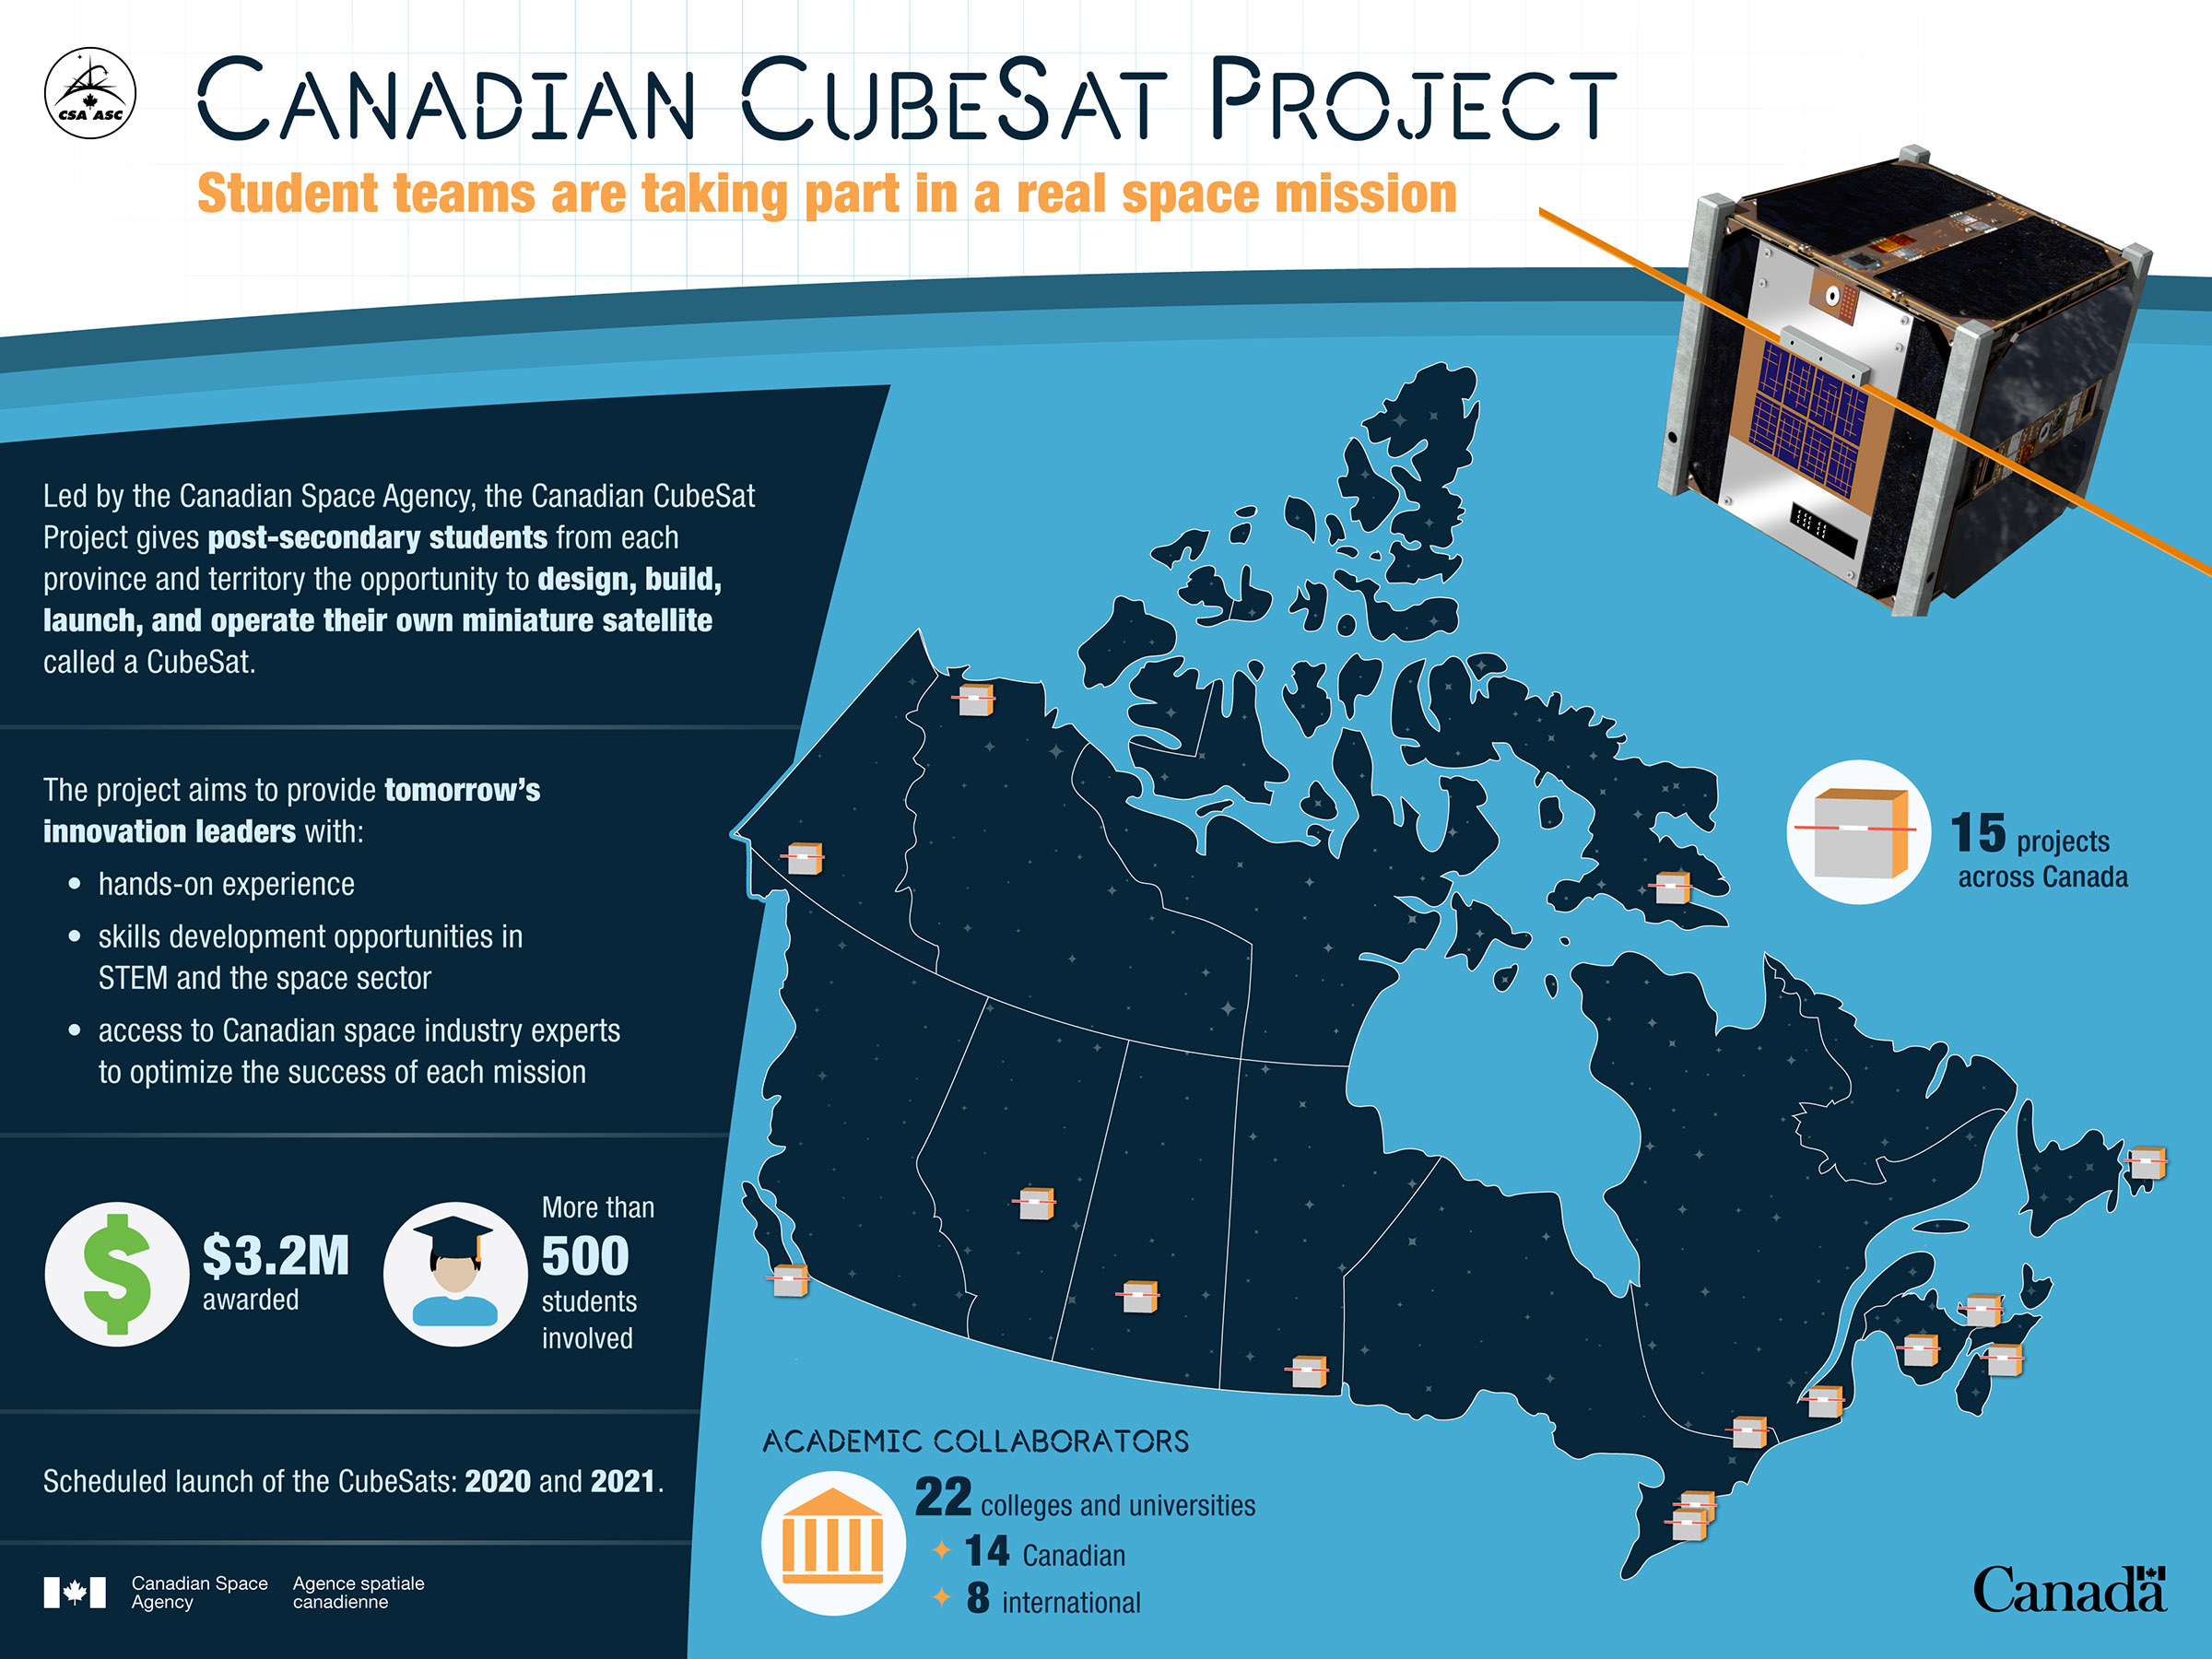 Canada to Launch 15 University Built Satellites by 2020 - SpaceQ